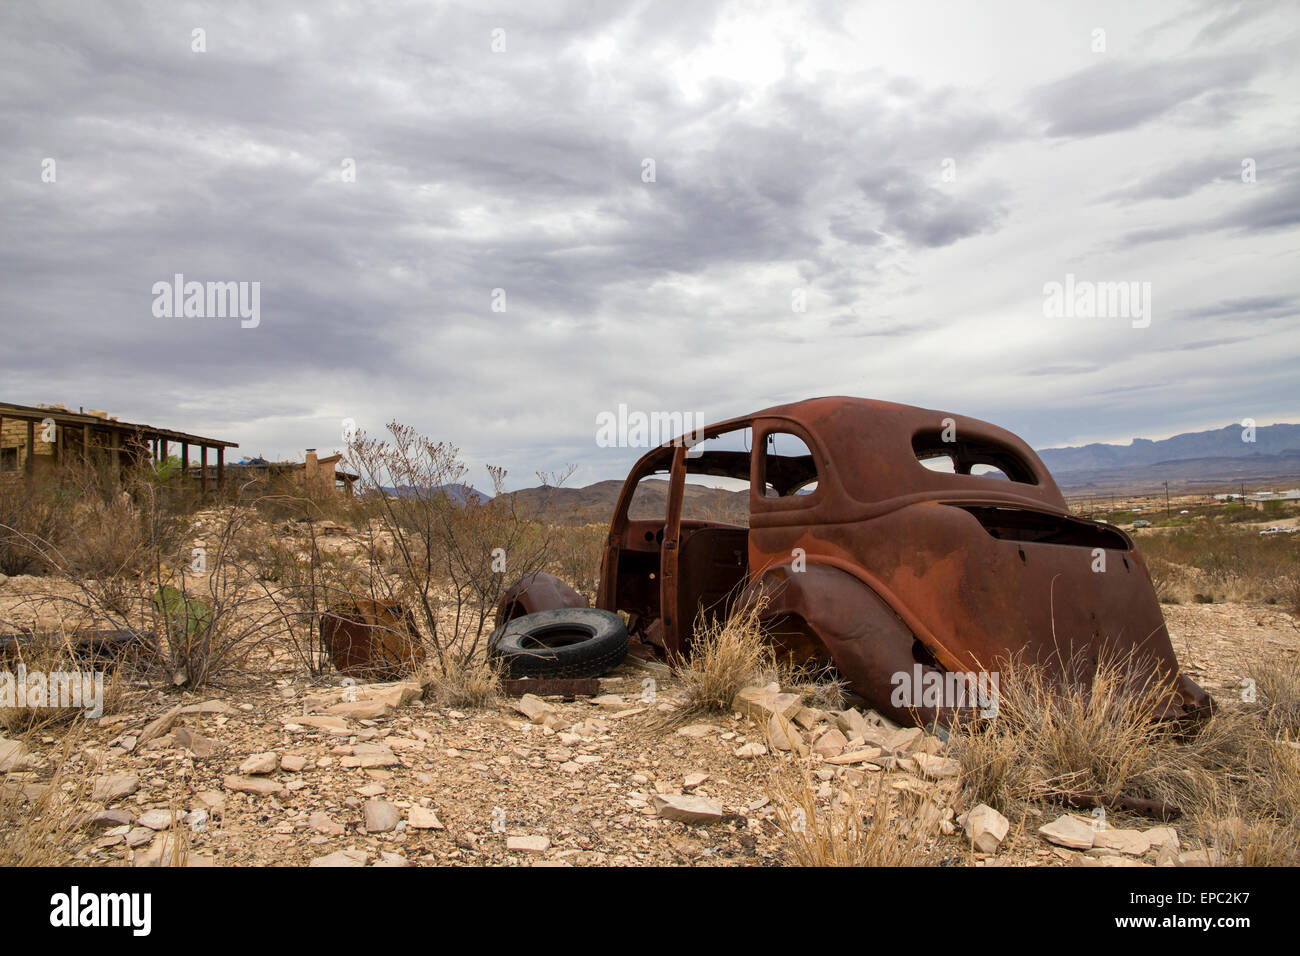 Ghost Town of U.S. - Stock Image